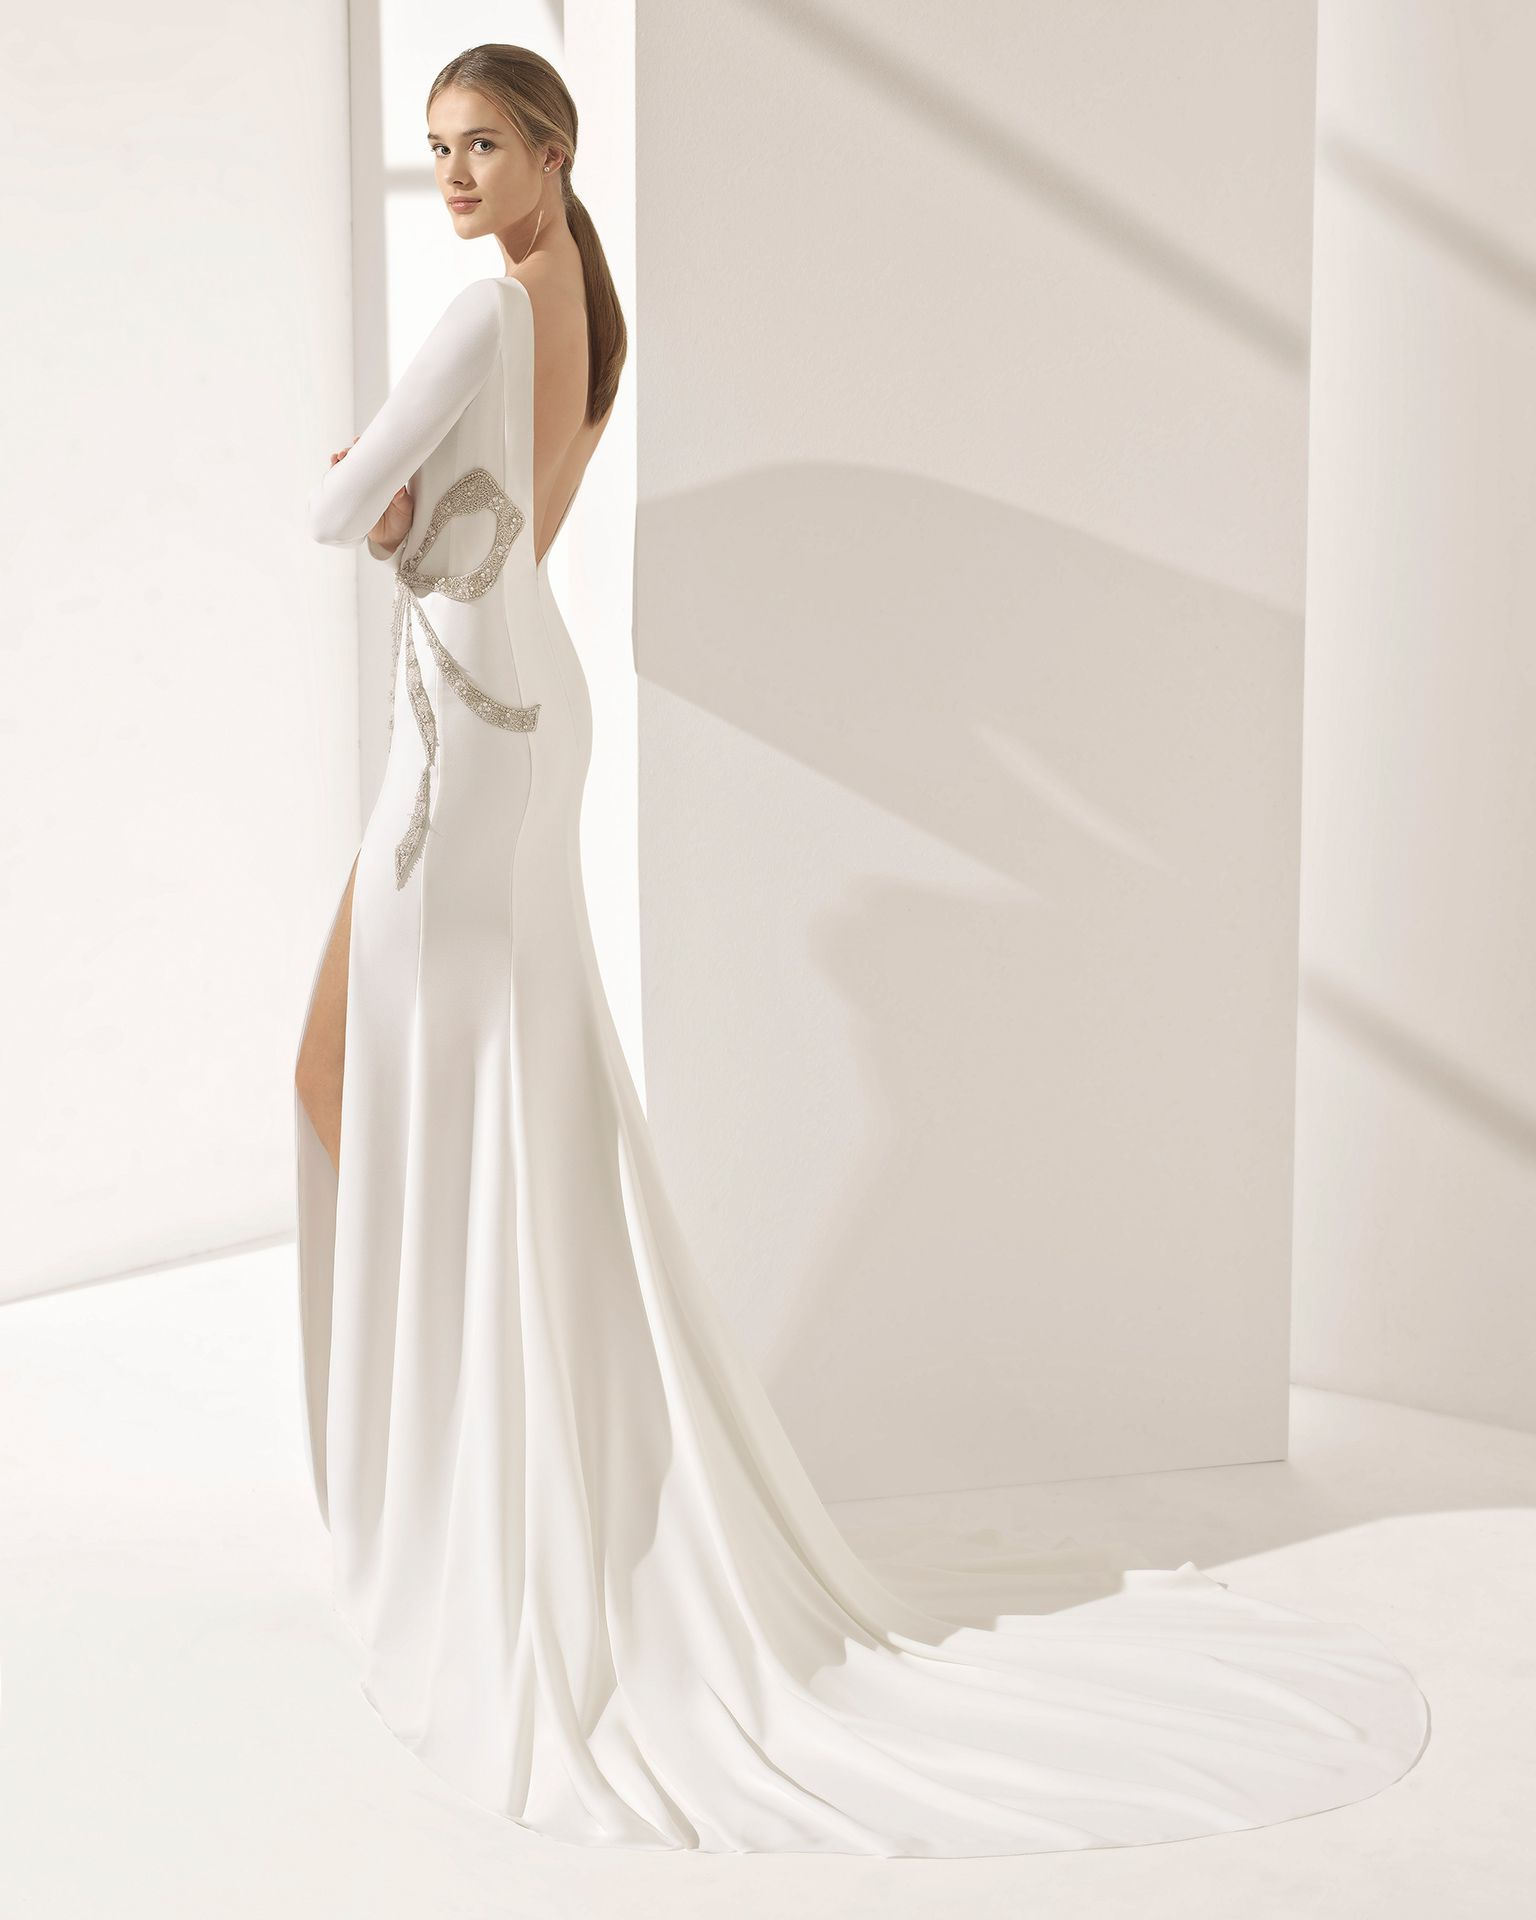 Paolo bridal collection rosa clará couture collection boda